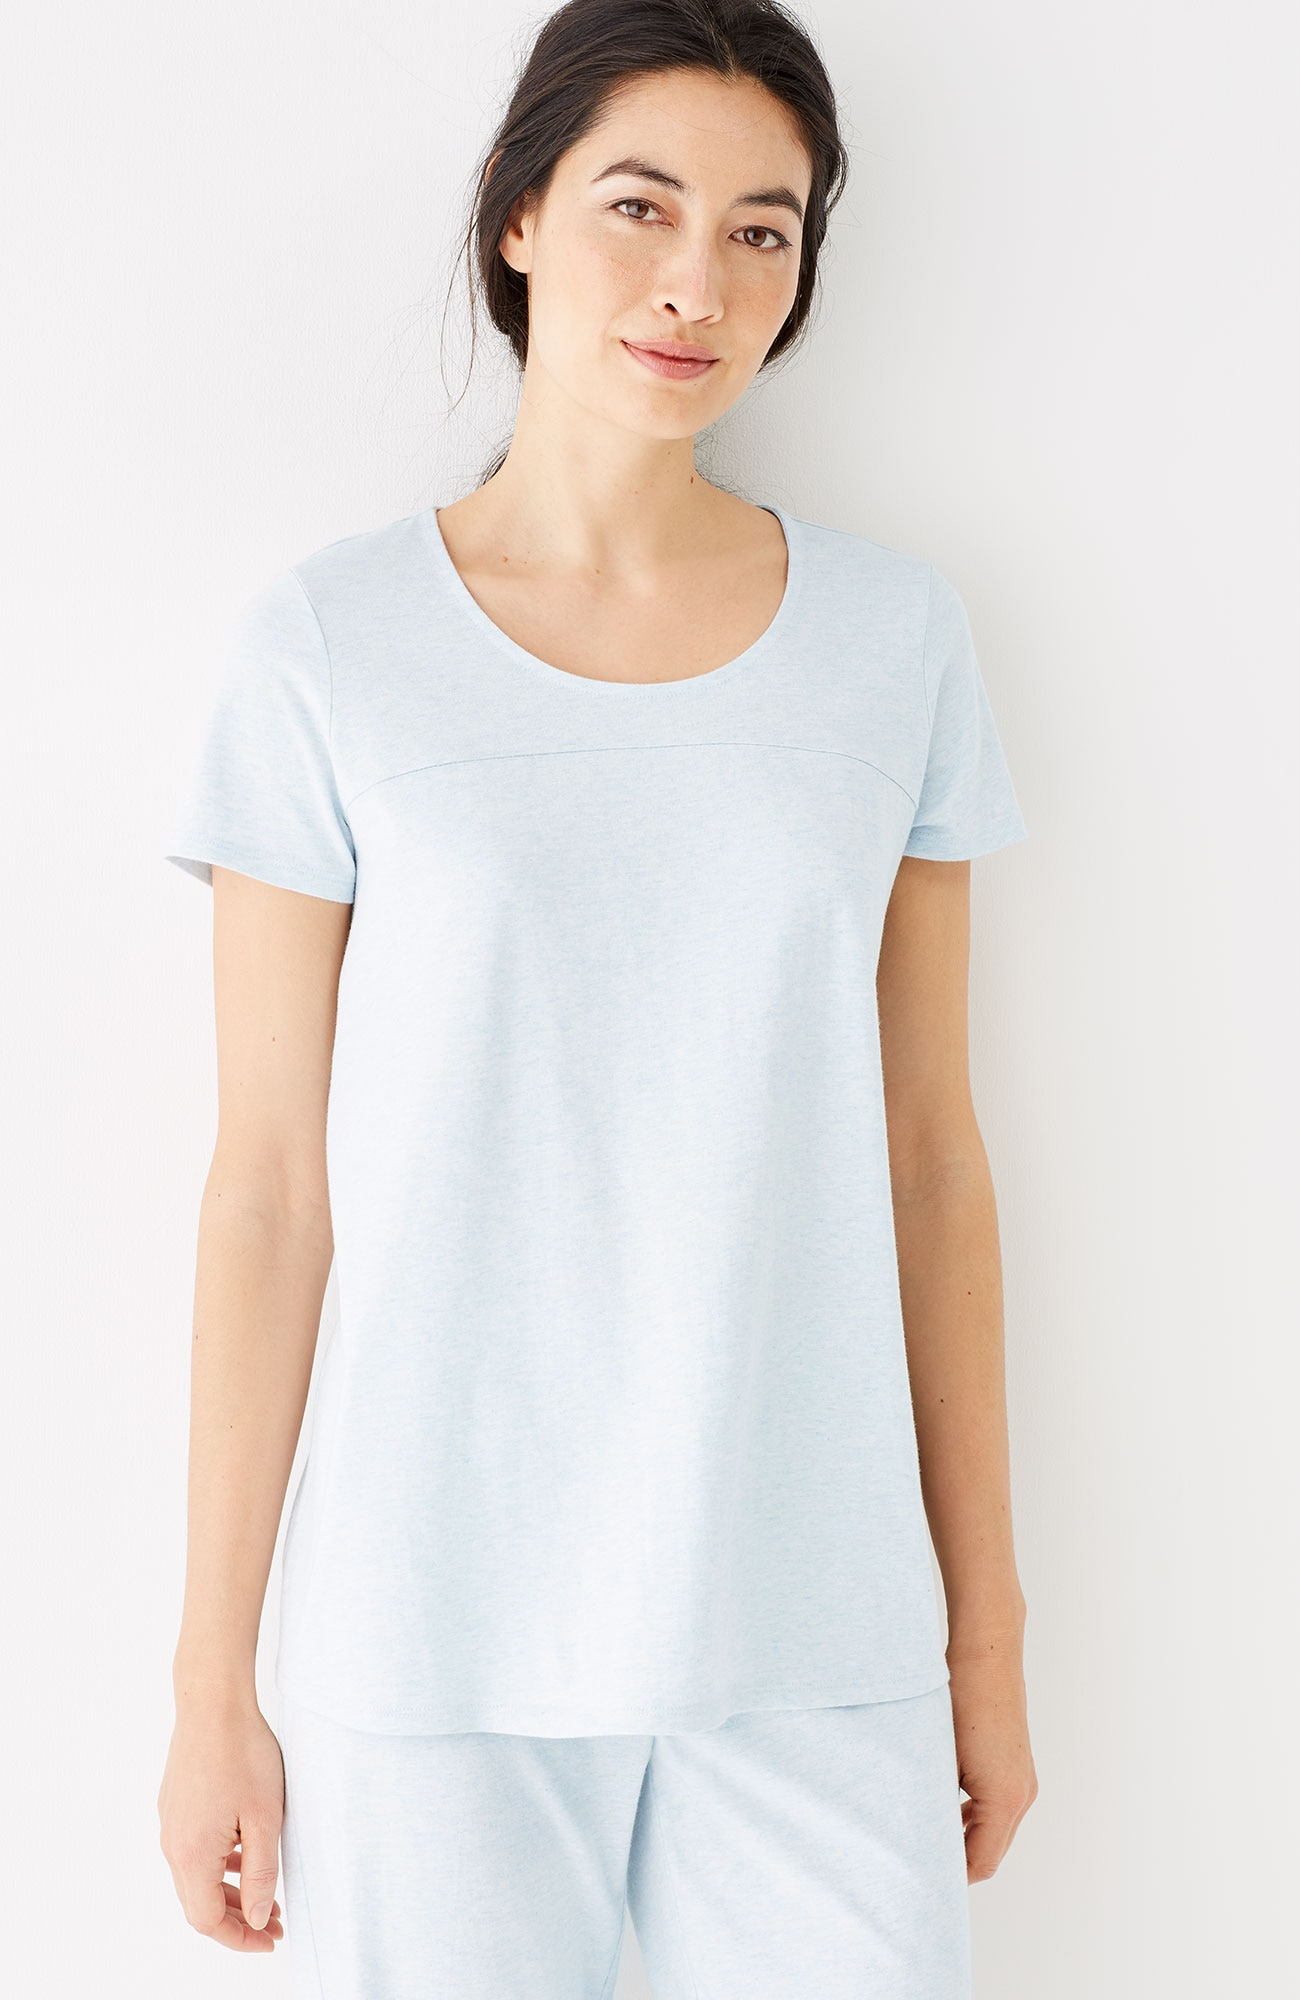 Pure Jill Sleep ultrasoft cap-sleeve tee